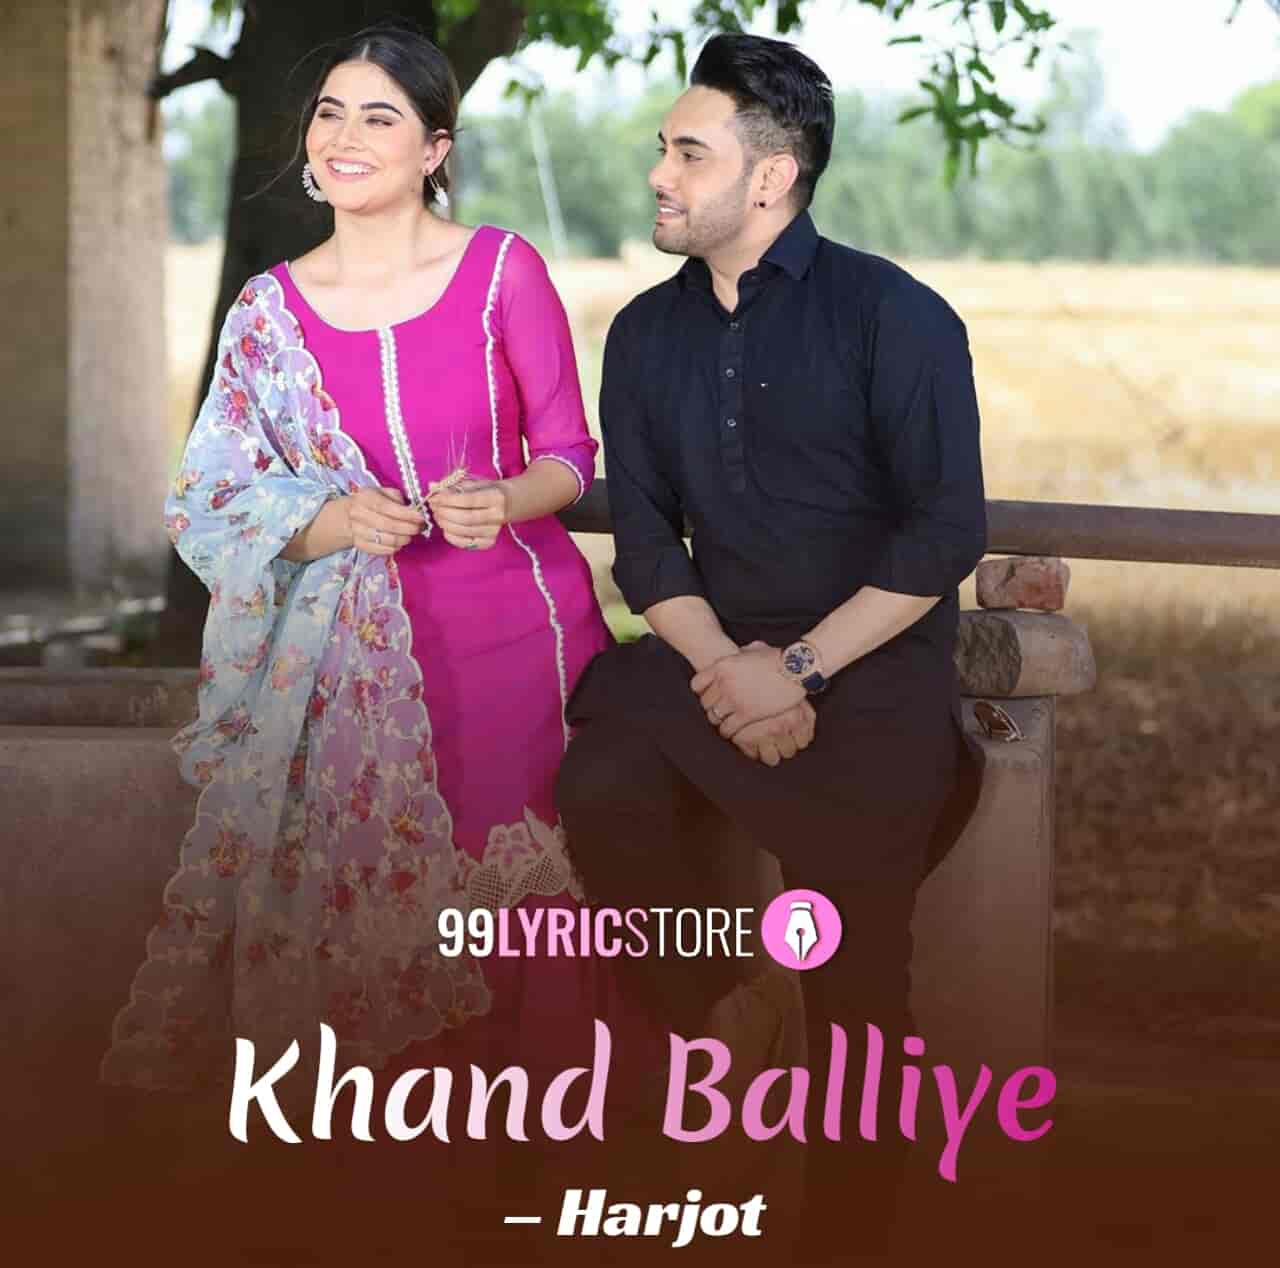 Khand Balliye Lyrics sung by Harjot